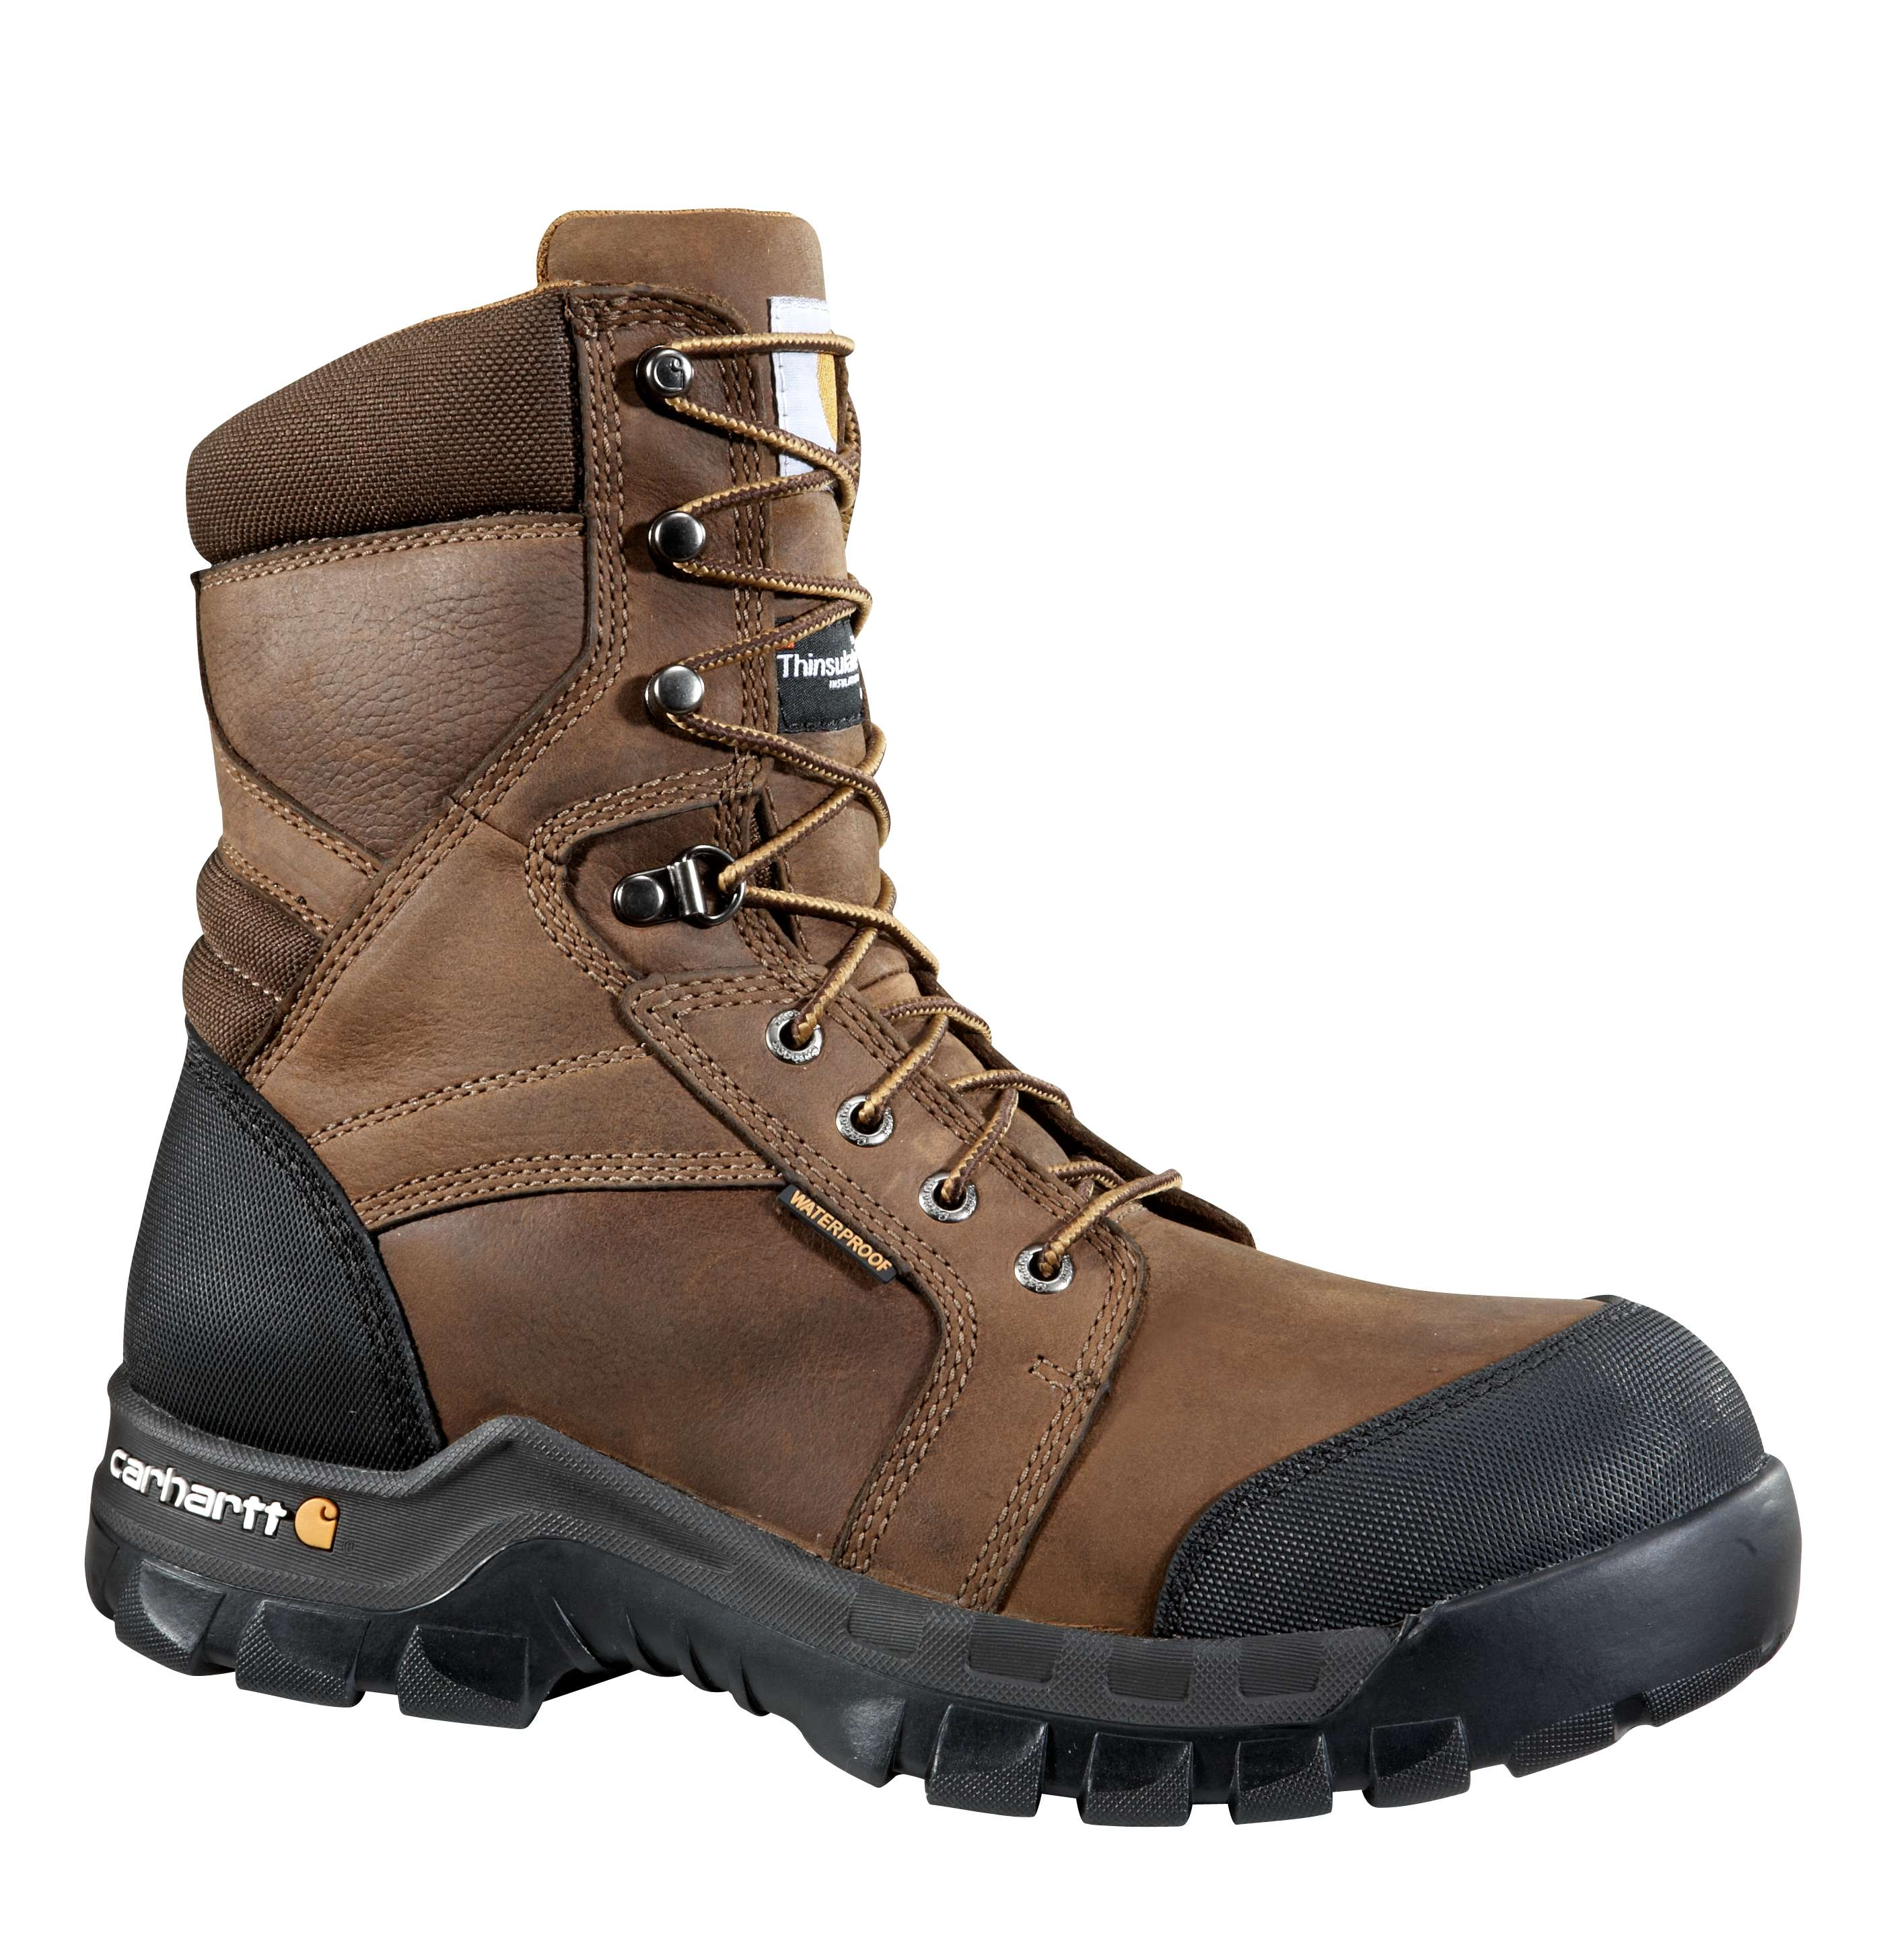 Rugged Flex 8-Inch Insulated Composite Toe Work Boot